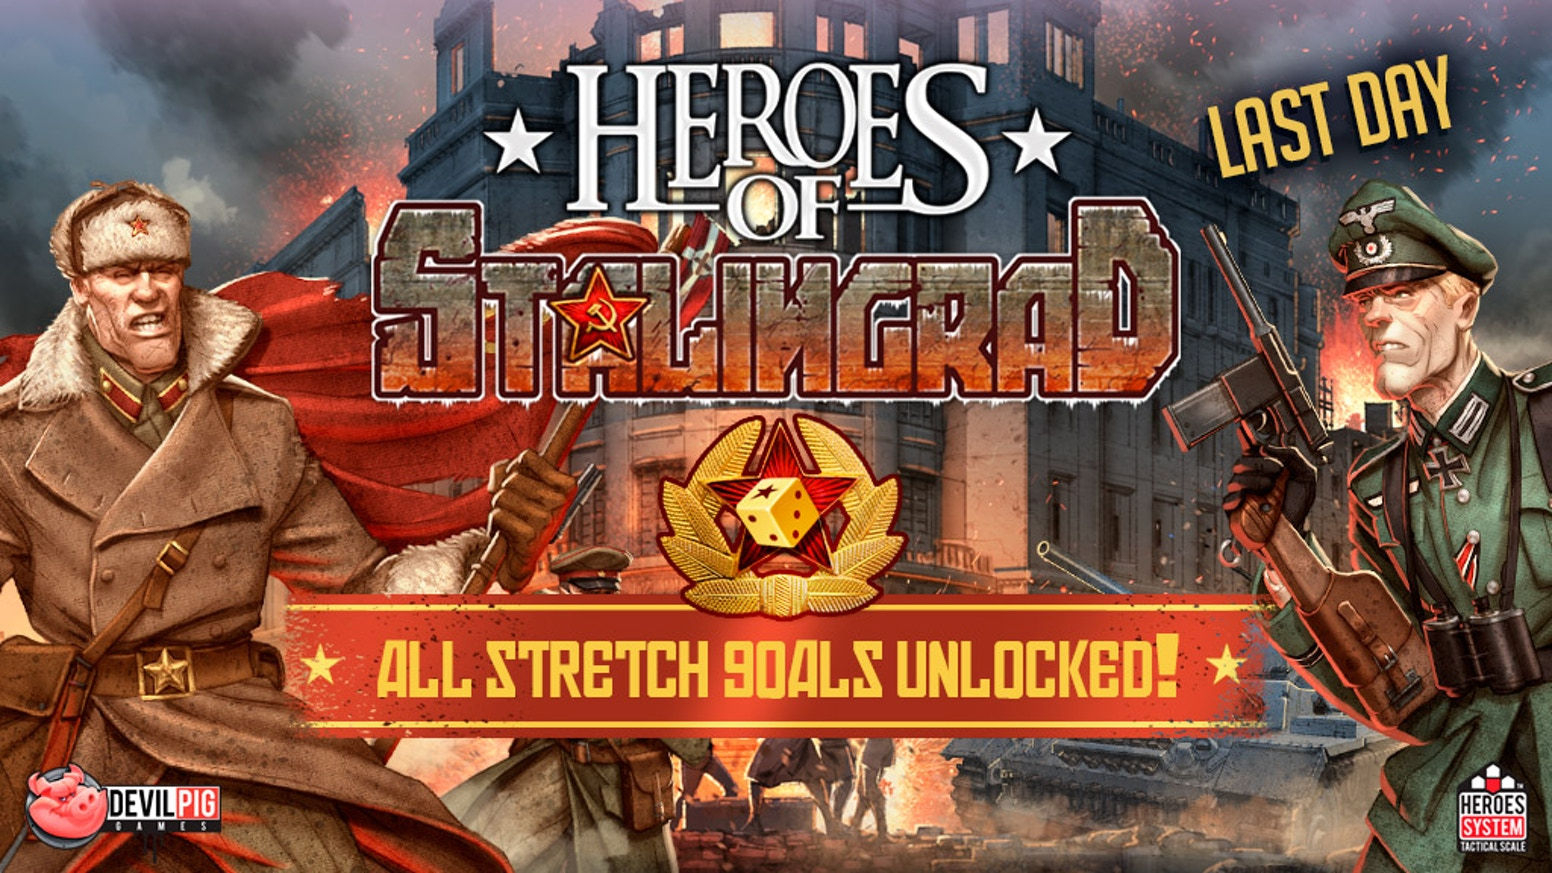 After Heroes of Normandie, unleash your army in besieged Stalingrad and use the Heroes System Tactical Scale to best your opponent!